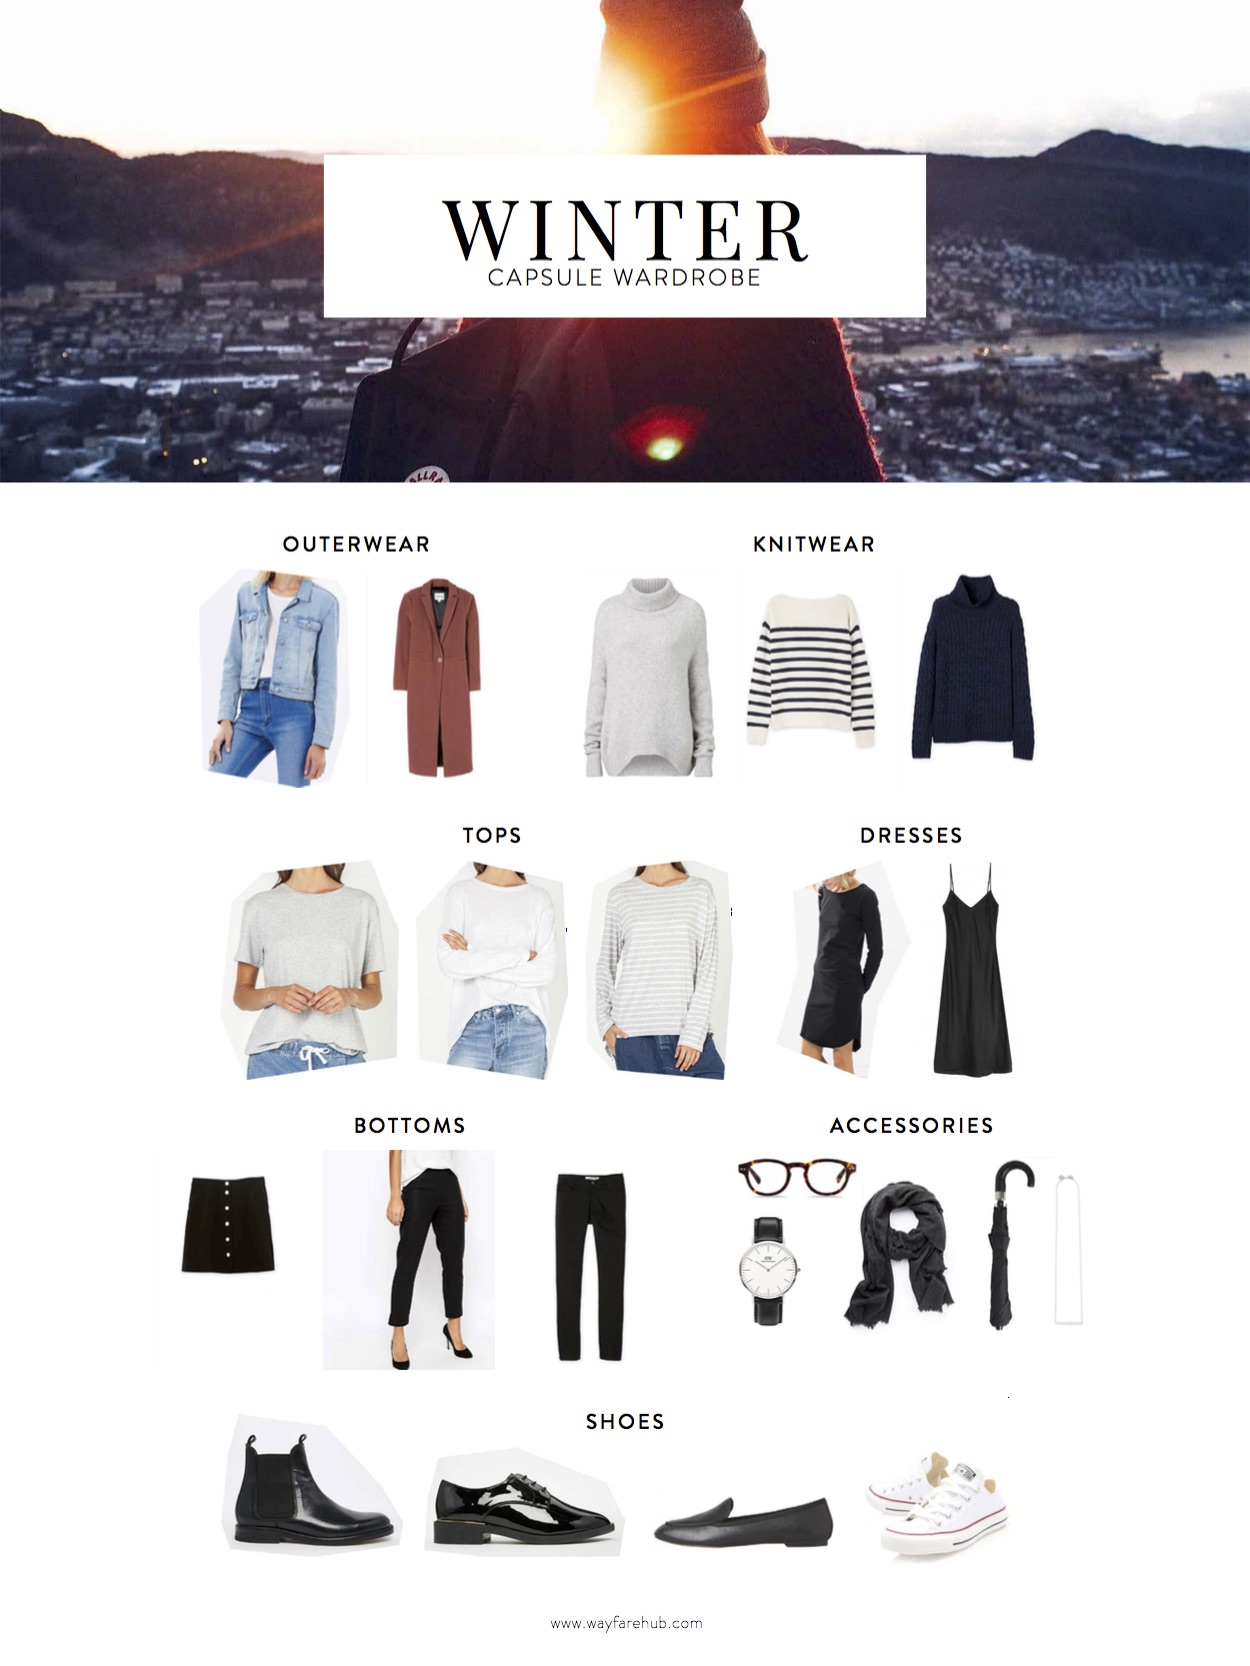 160403-Winter-Capsule-Wardobe-v2.jpg